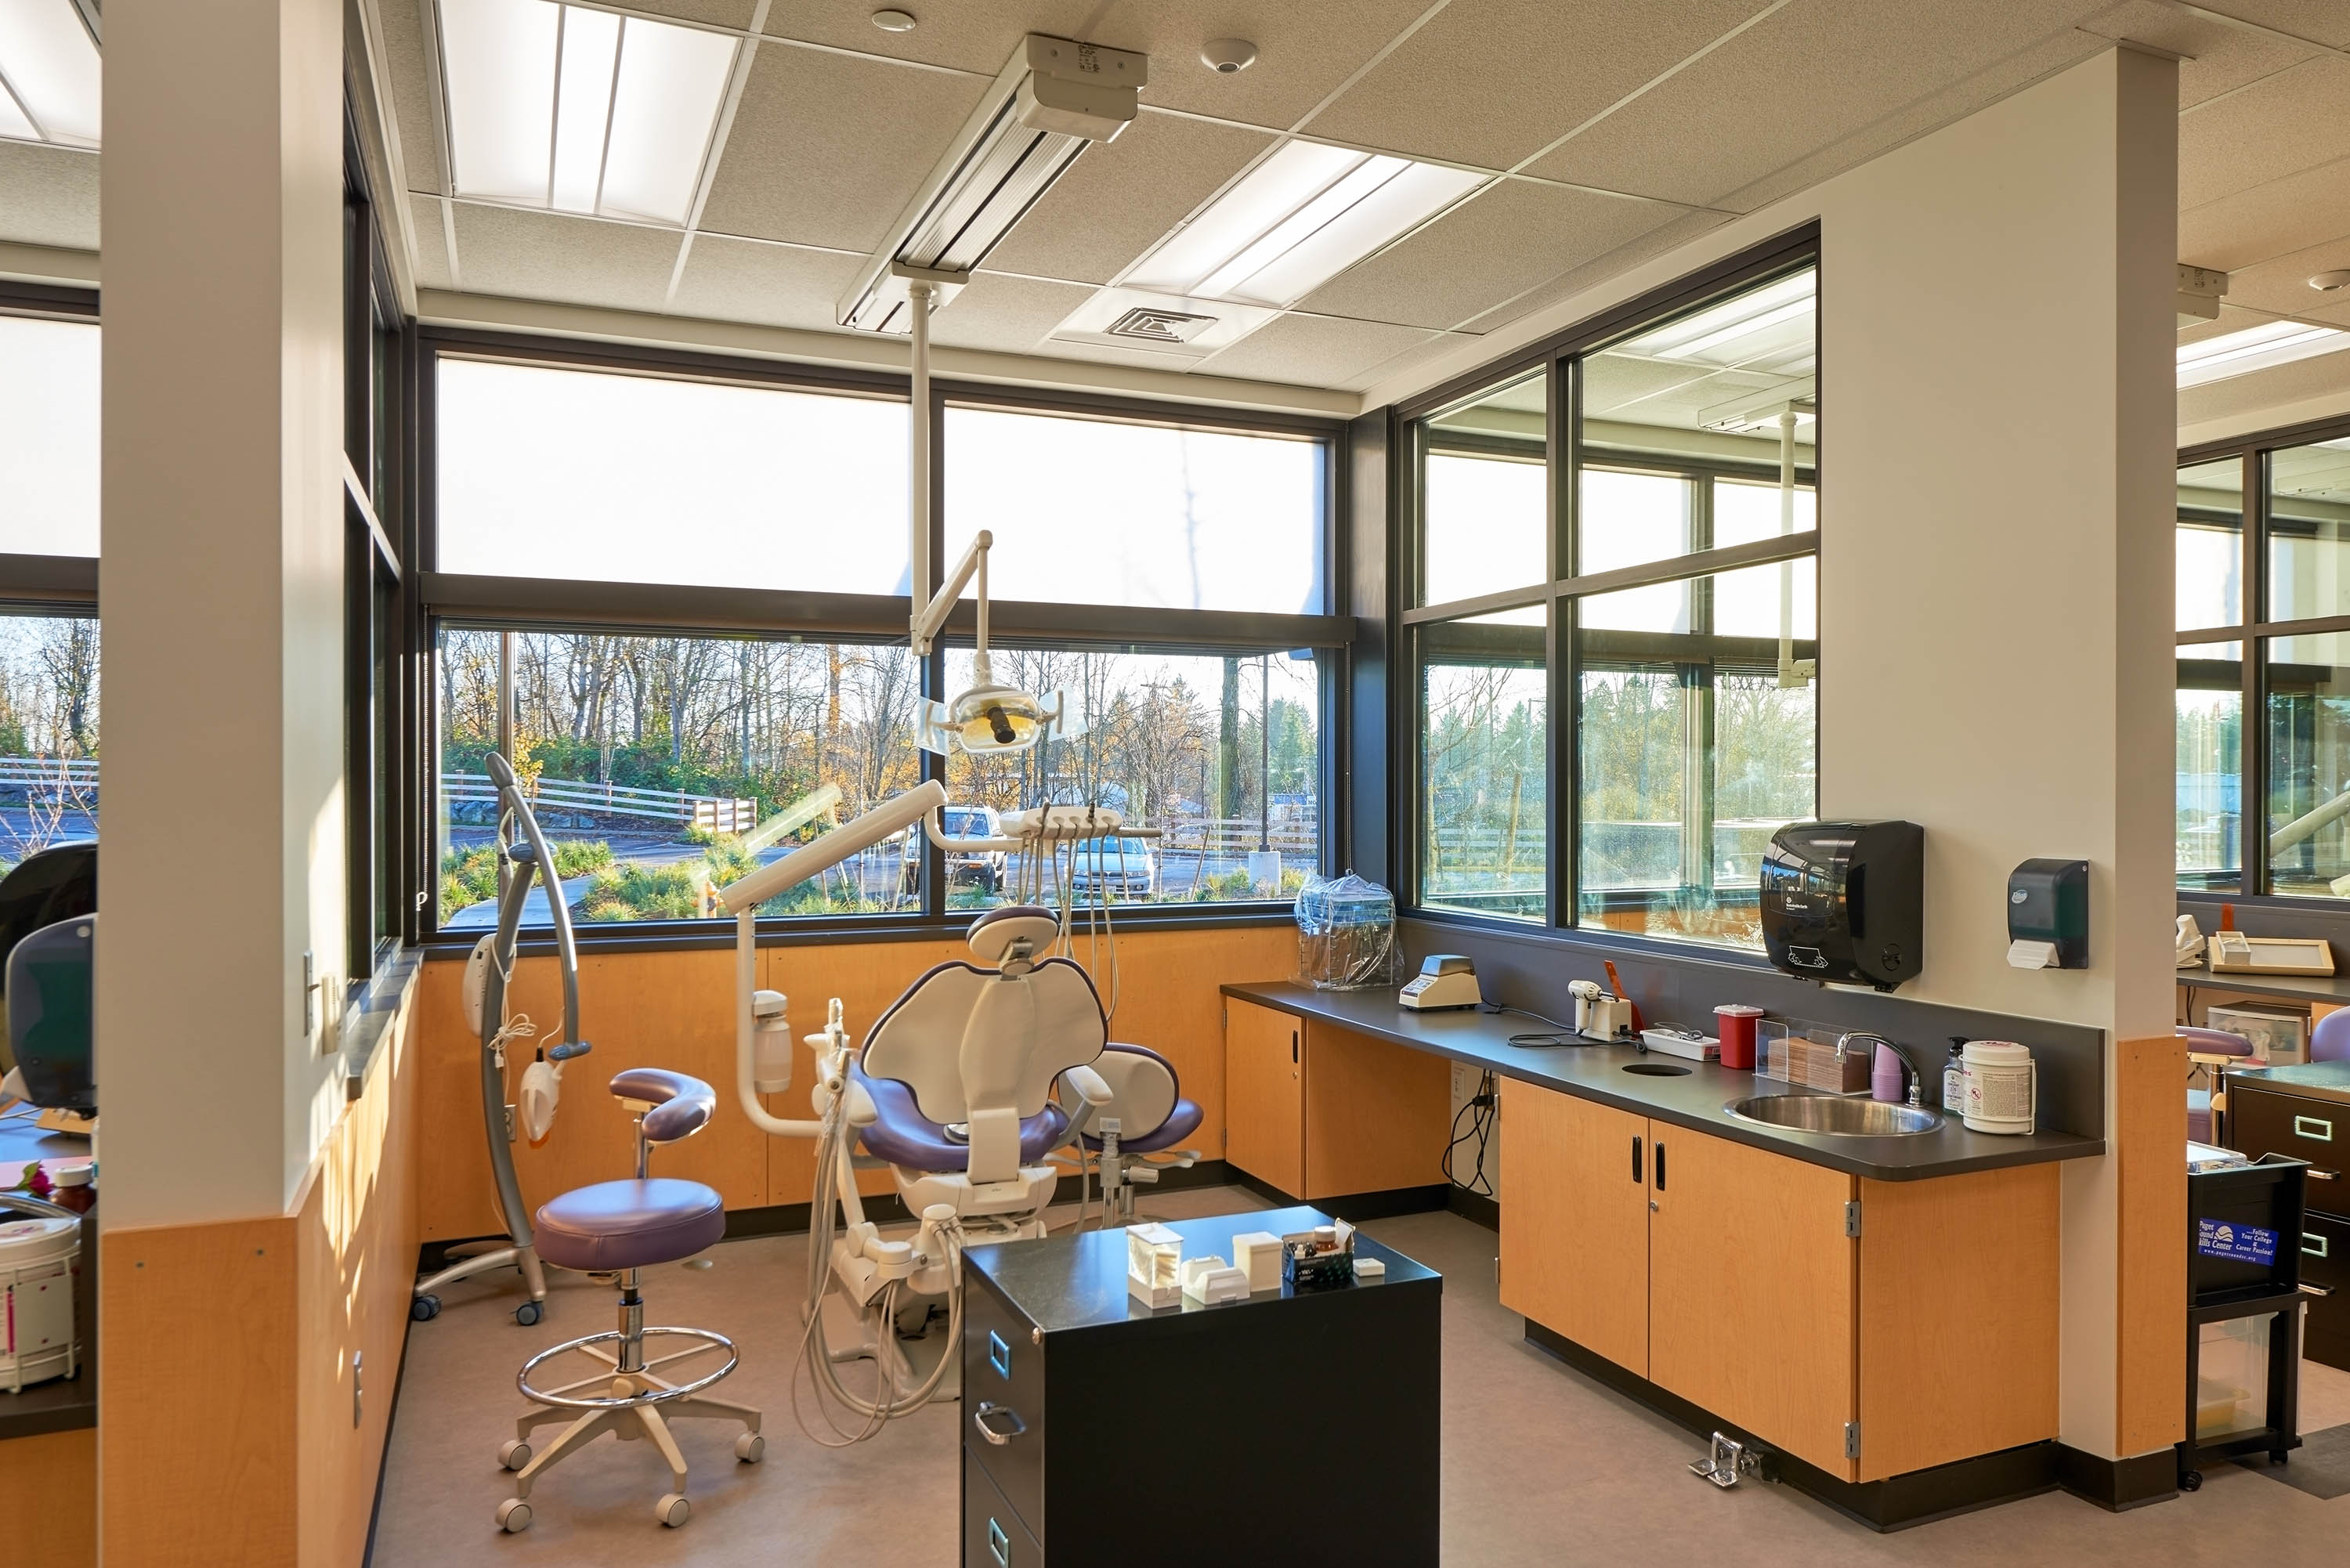 A full dental workspace in one of the medical classrooms.